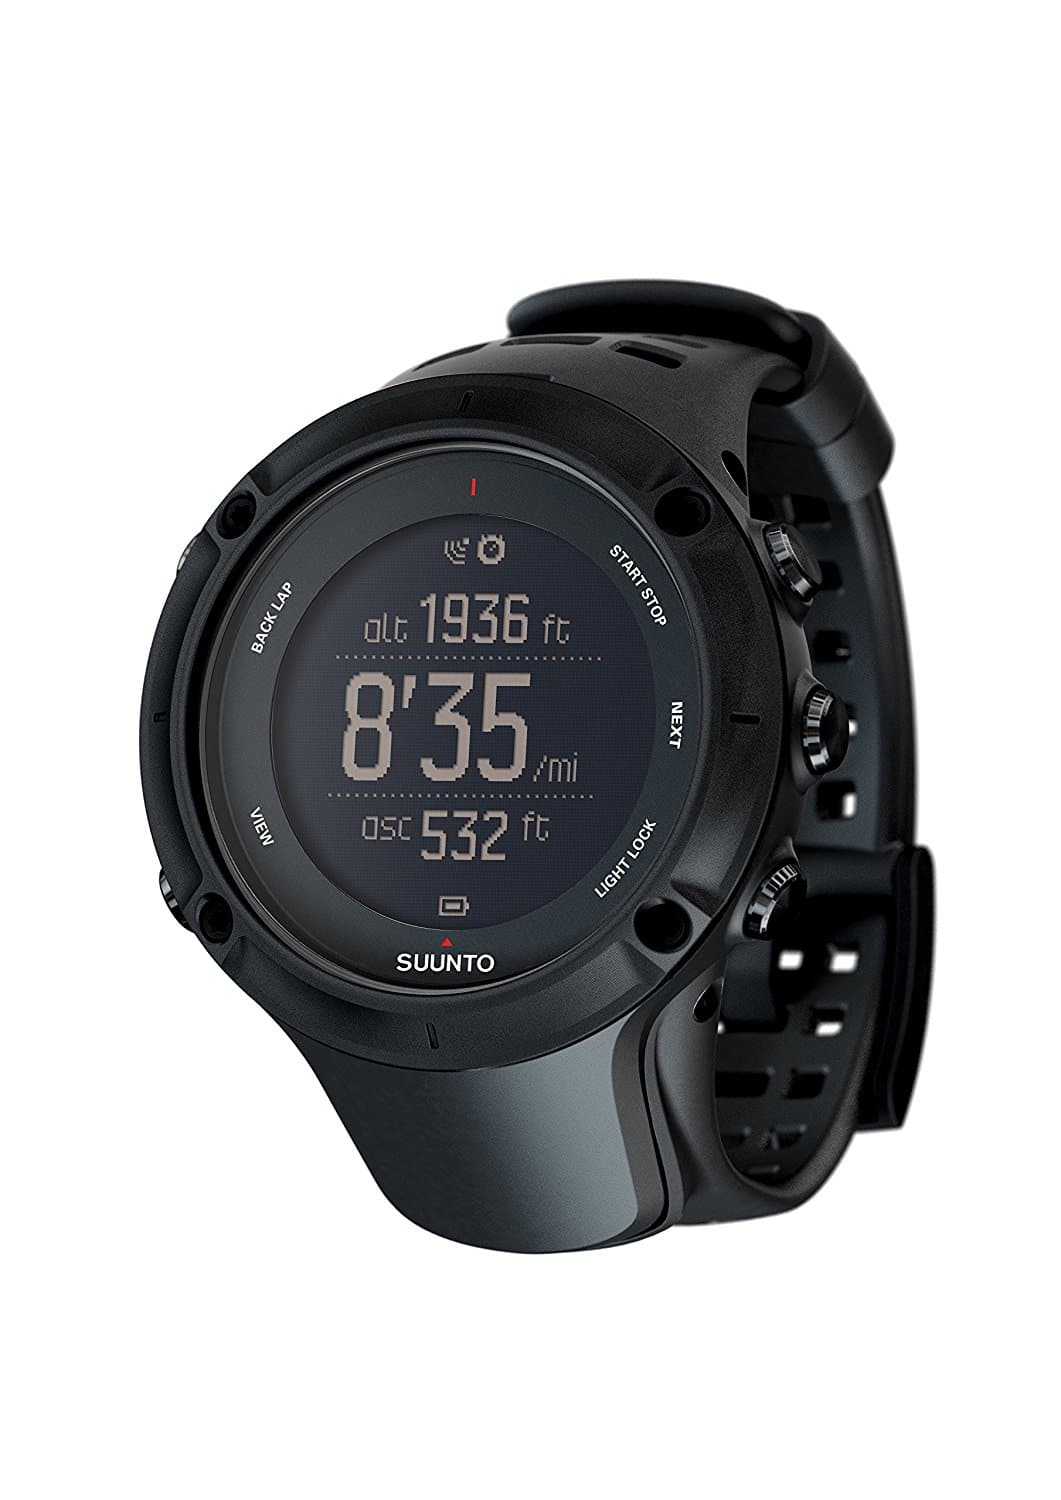 Suunto Ambit3 Peak - Sleek